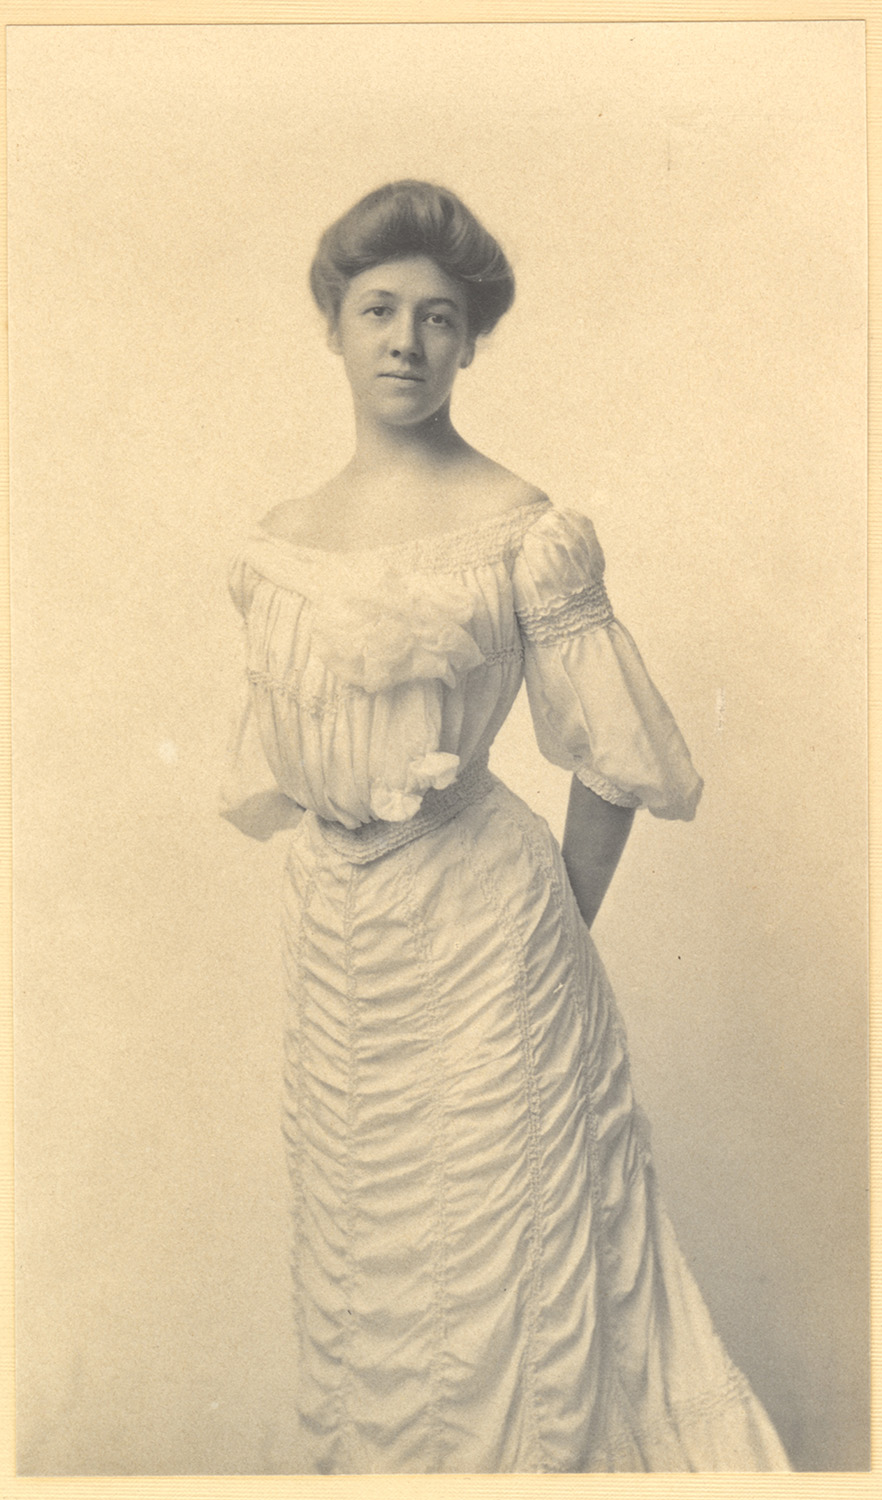 Lucy Kennedy, c. 1900. From the Kennedy Family Papers and Photographs, 2018.0011, Detre Library & Archives at the History Center.